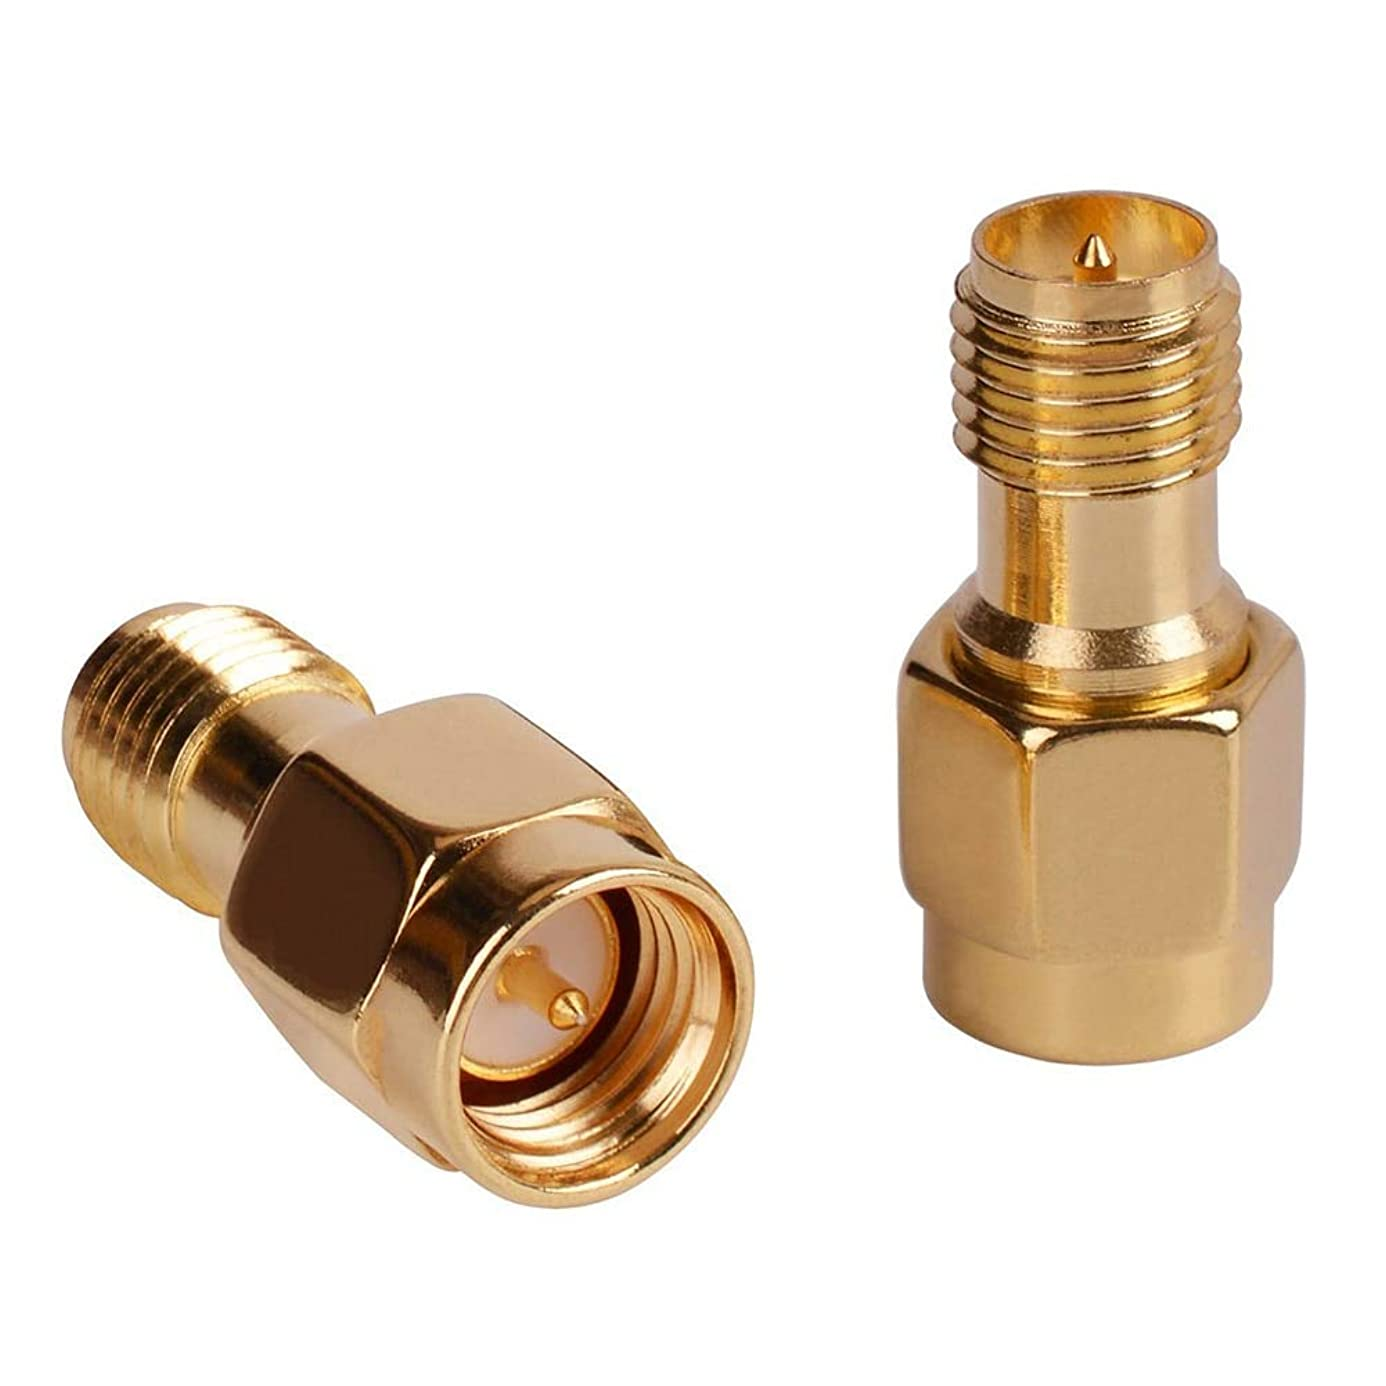 Gimax ELEG-SMA Male Plug (Pin) to RP-SMA Female (Pin) Coupling Nut Connector Adapter for Wi-Fi Antenna/Signal Booster/Repeaters - (Color: Gold)